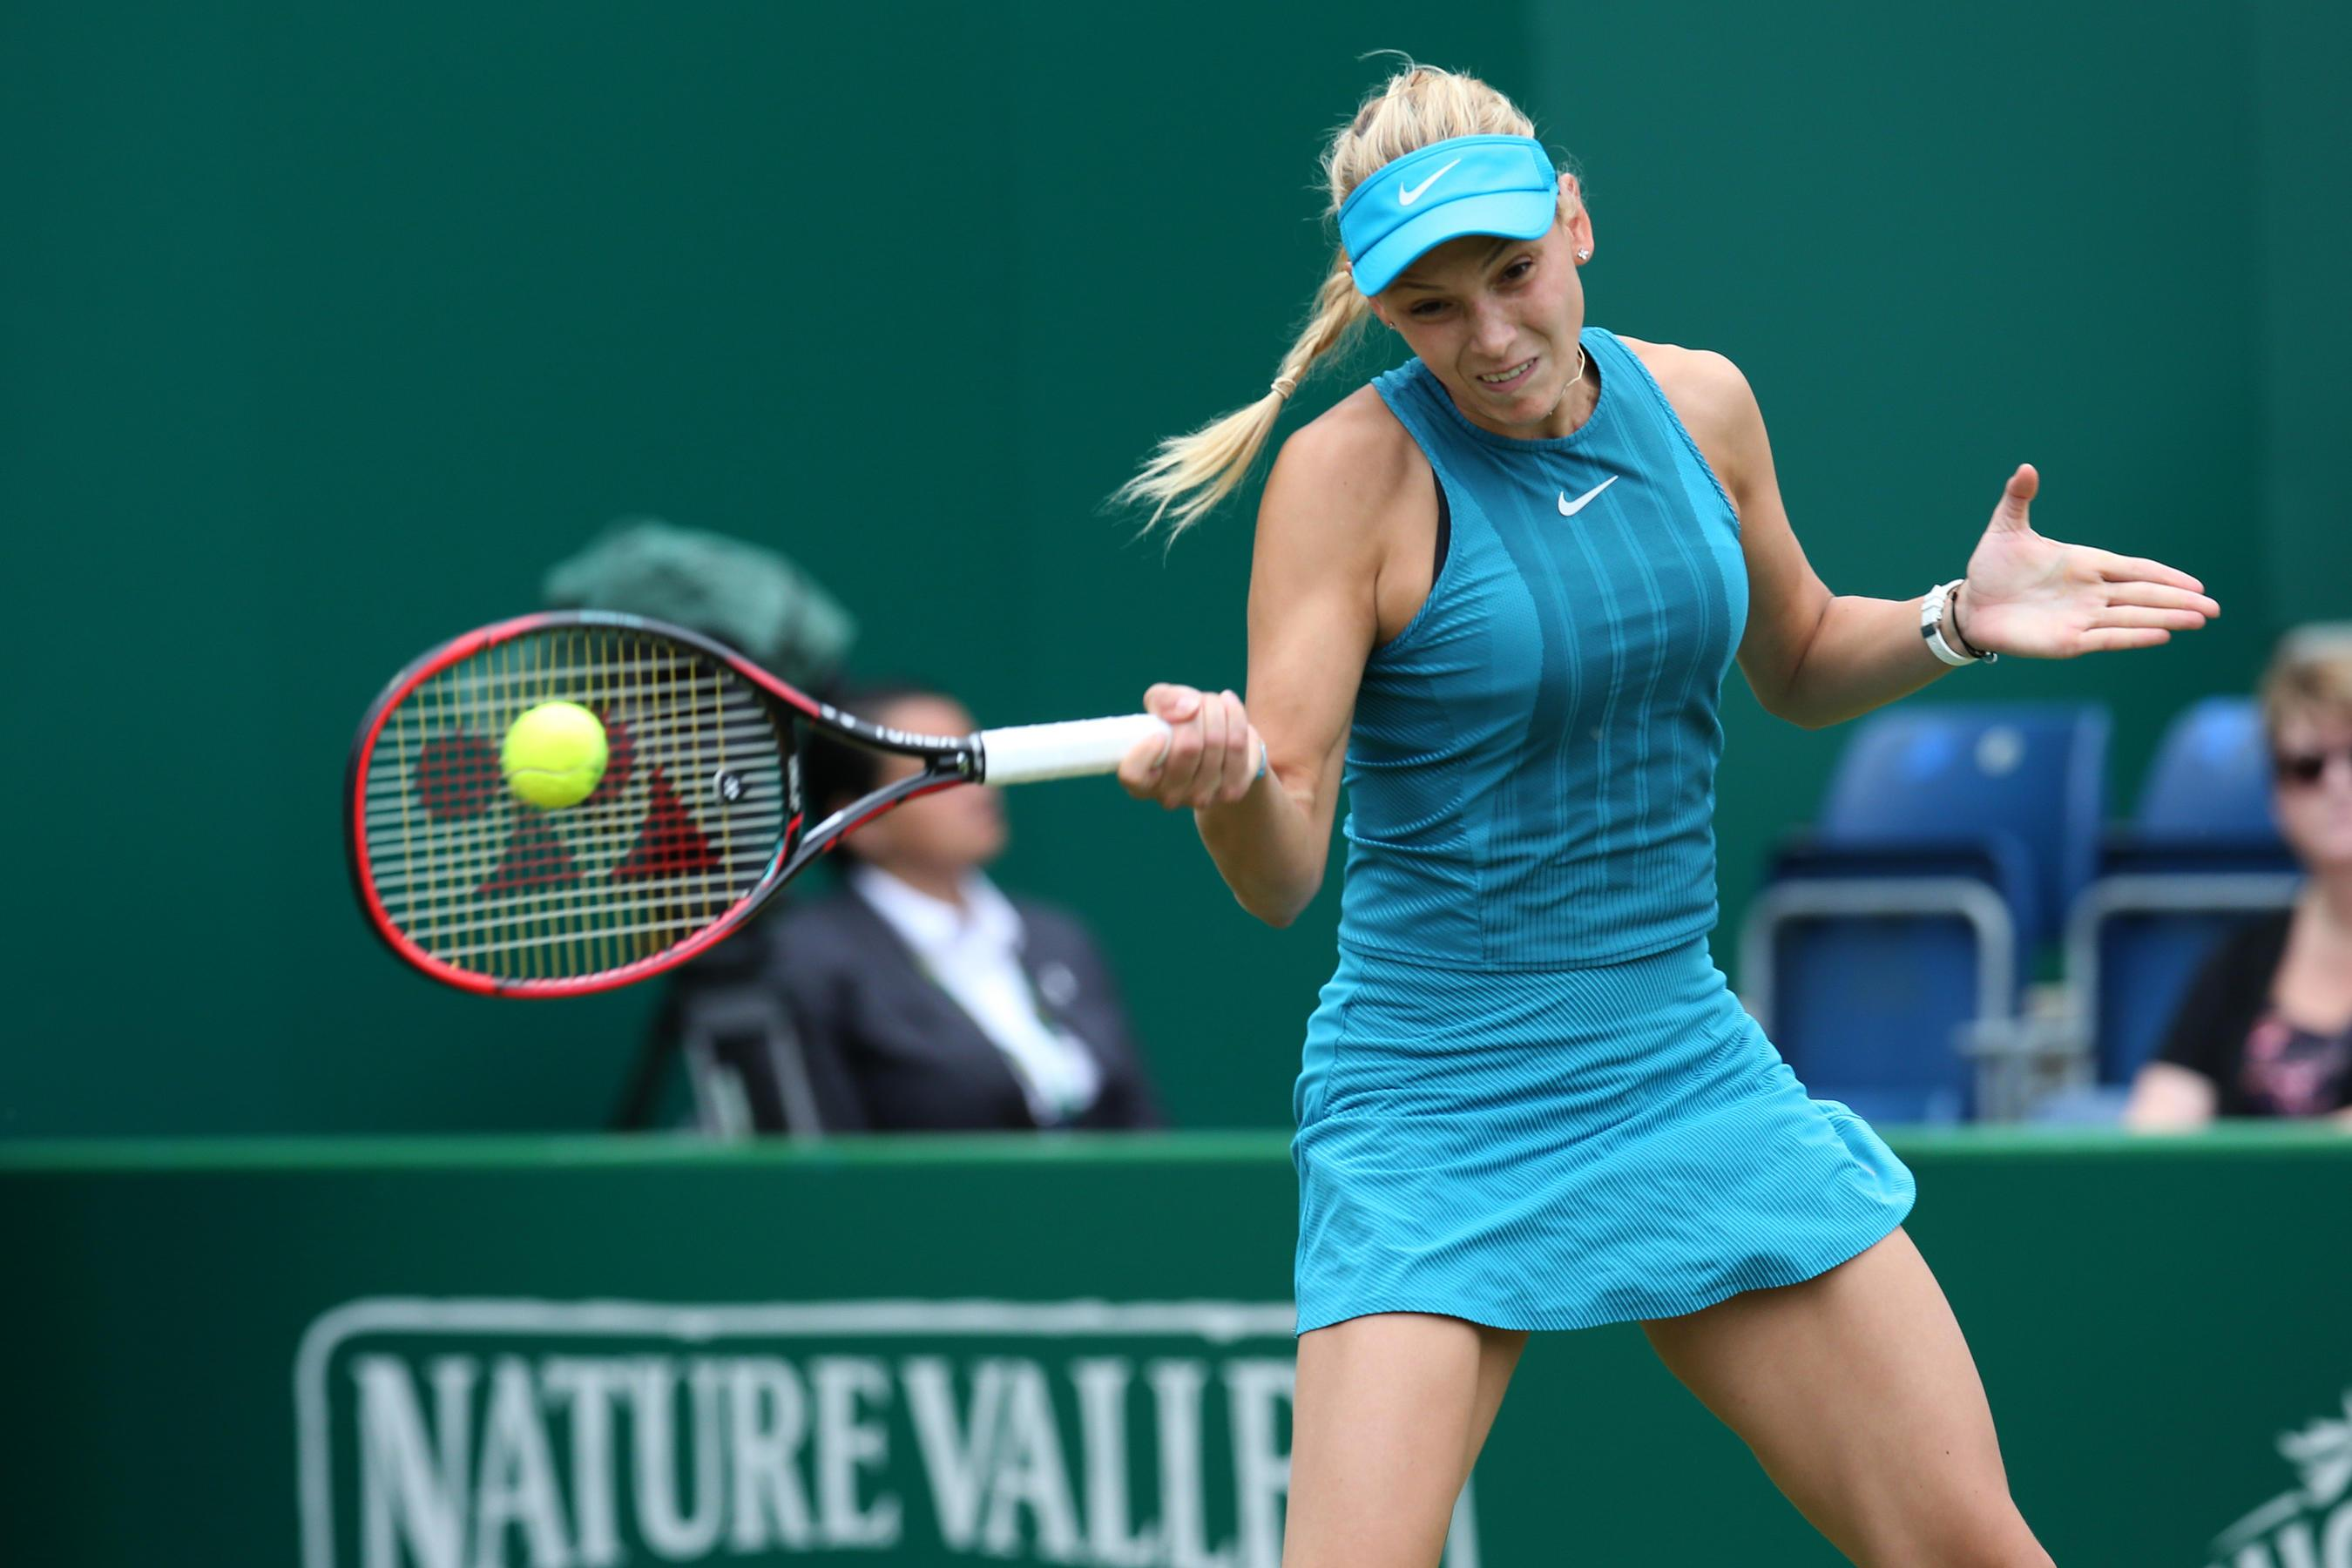 Vekic won her second WTA Tour title last year at Nottingham, beating Jo Konta in the final